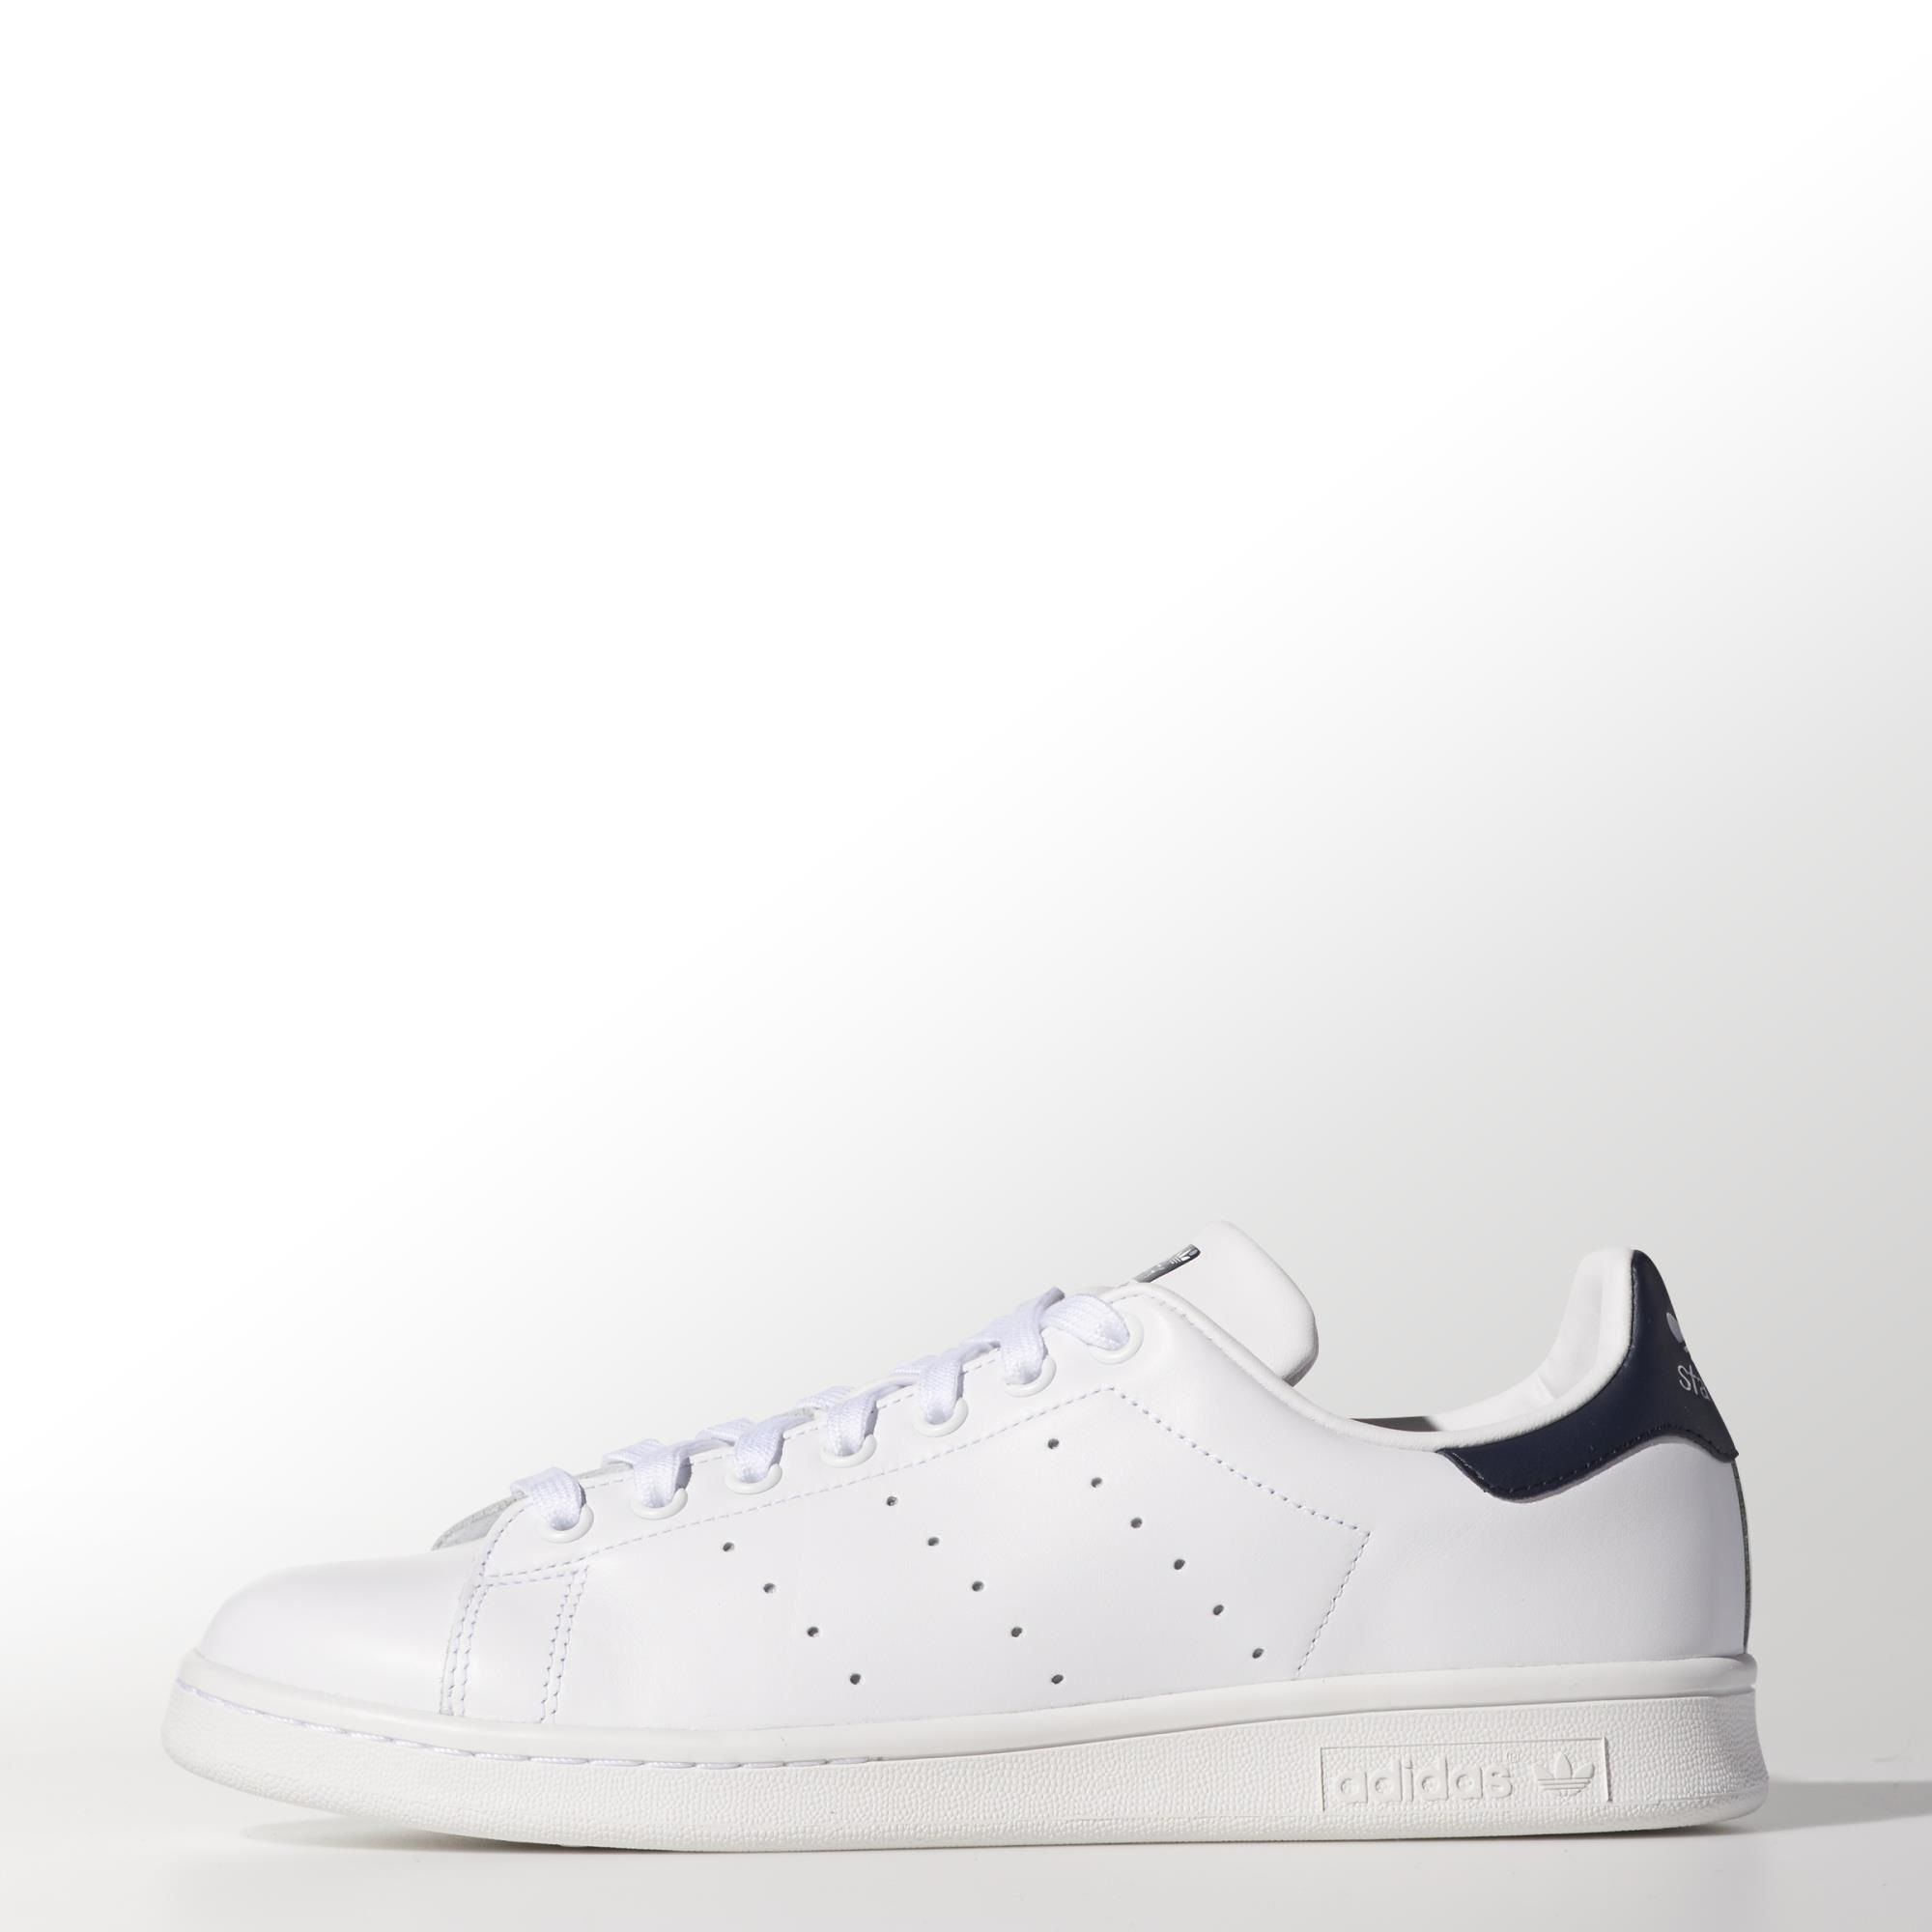 Created in 1971 for tennis star Stan Smith, this clean-cut men's shoe holds